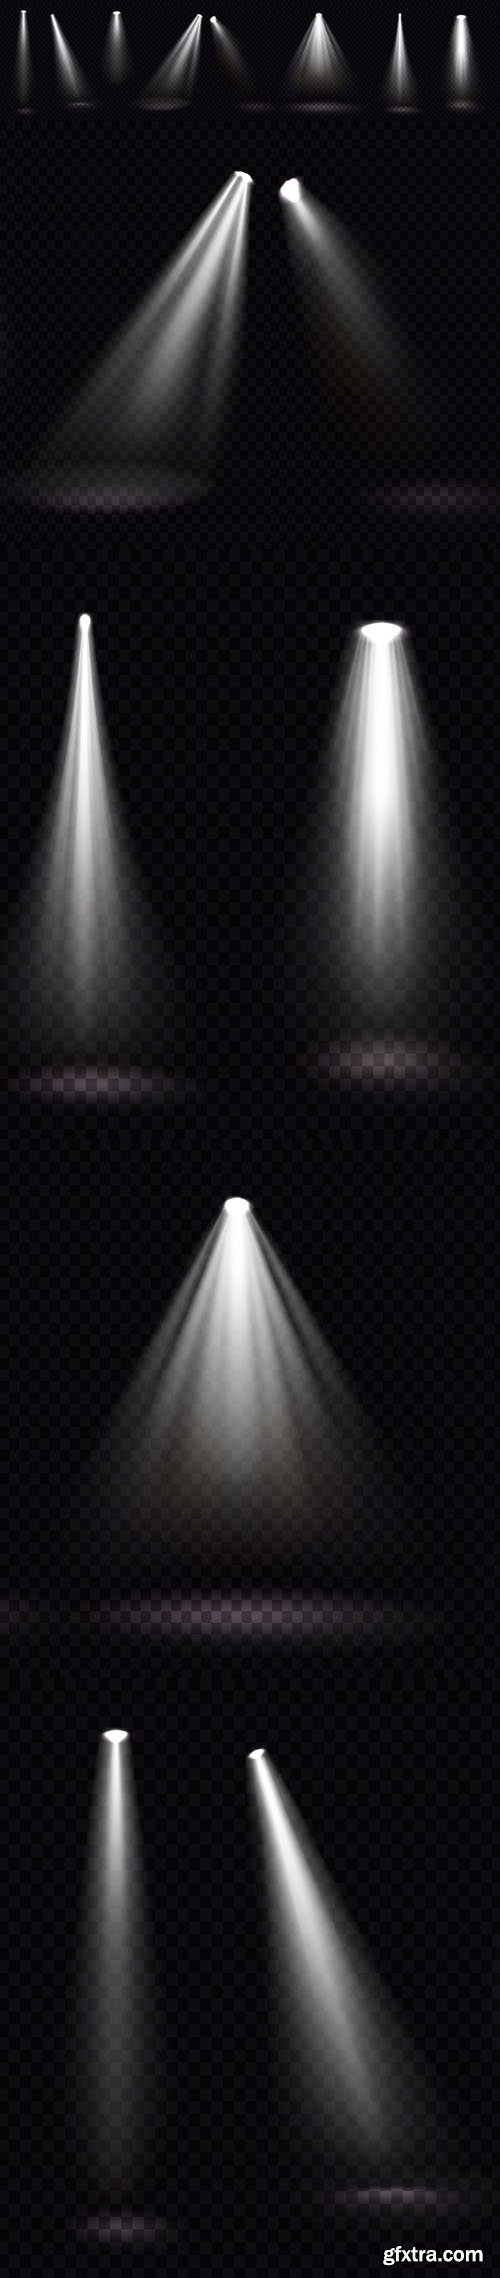 Glowing White Spotlight Design Vector Elements